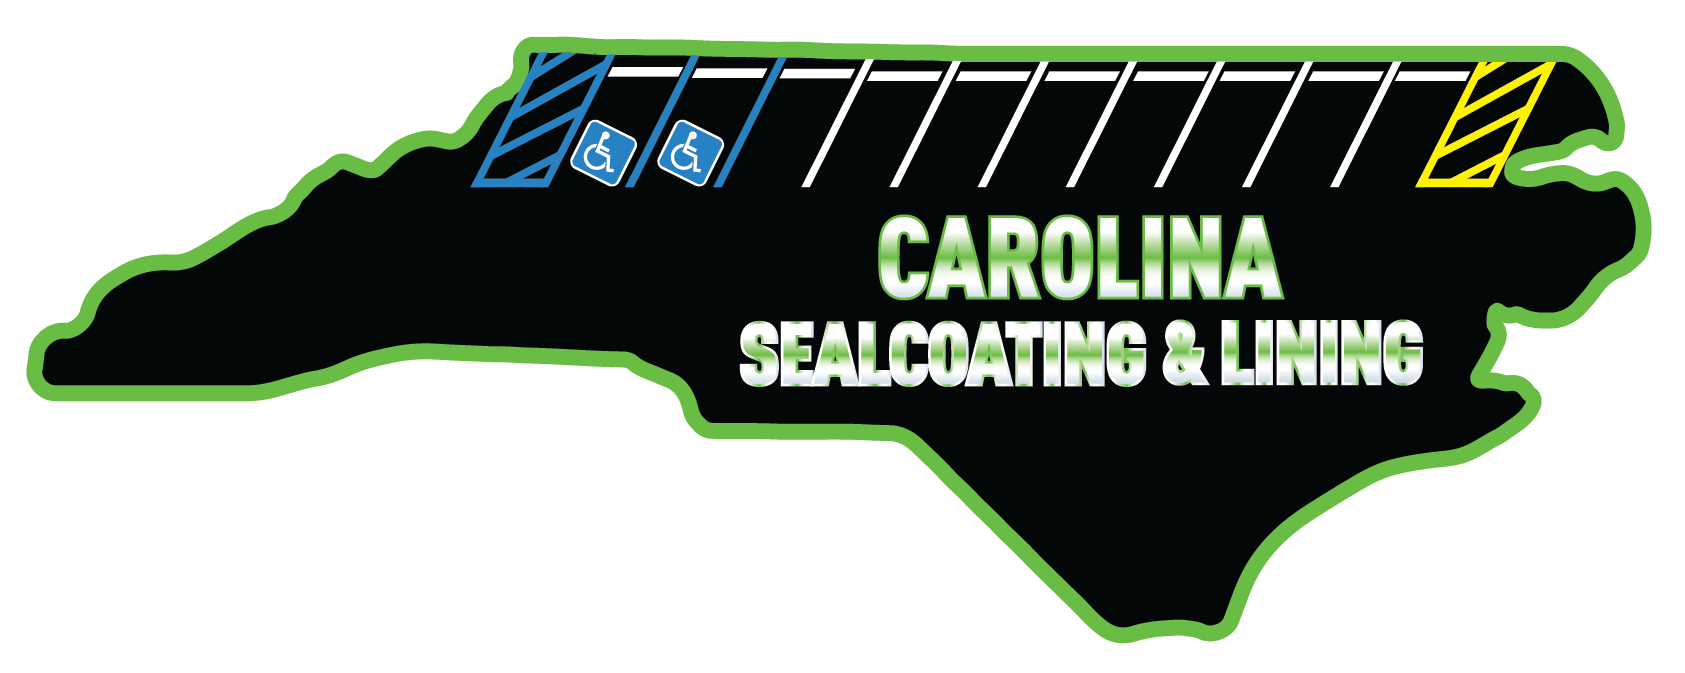 Carolina Sealcoating  & Lining, LLC